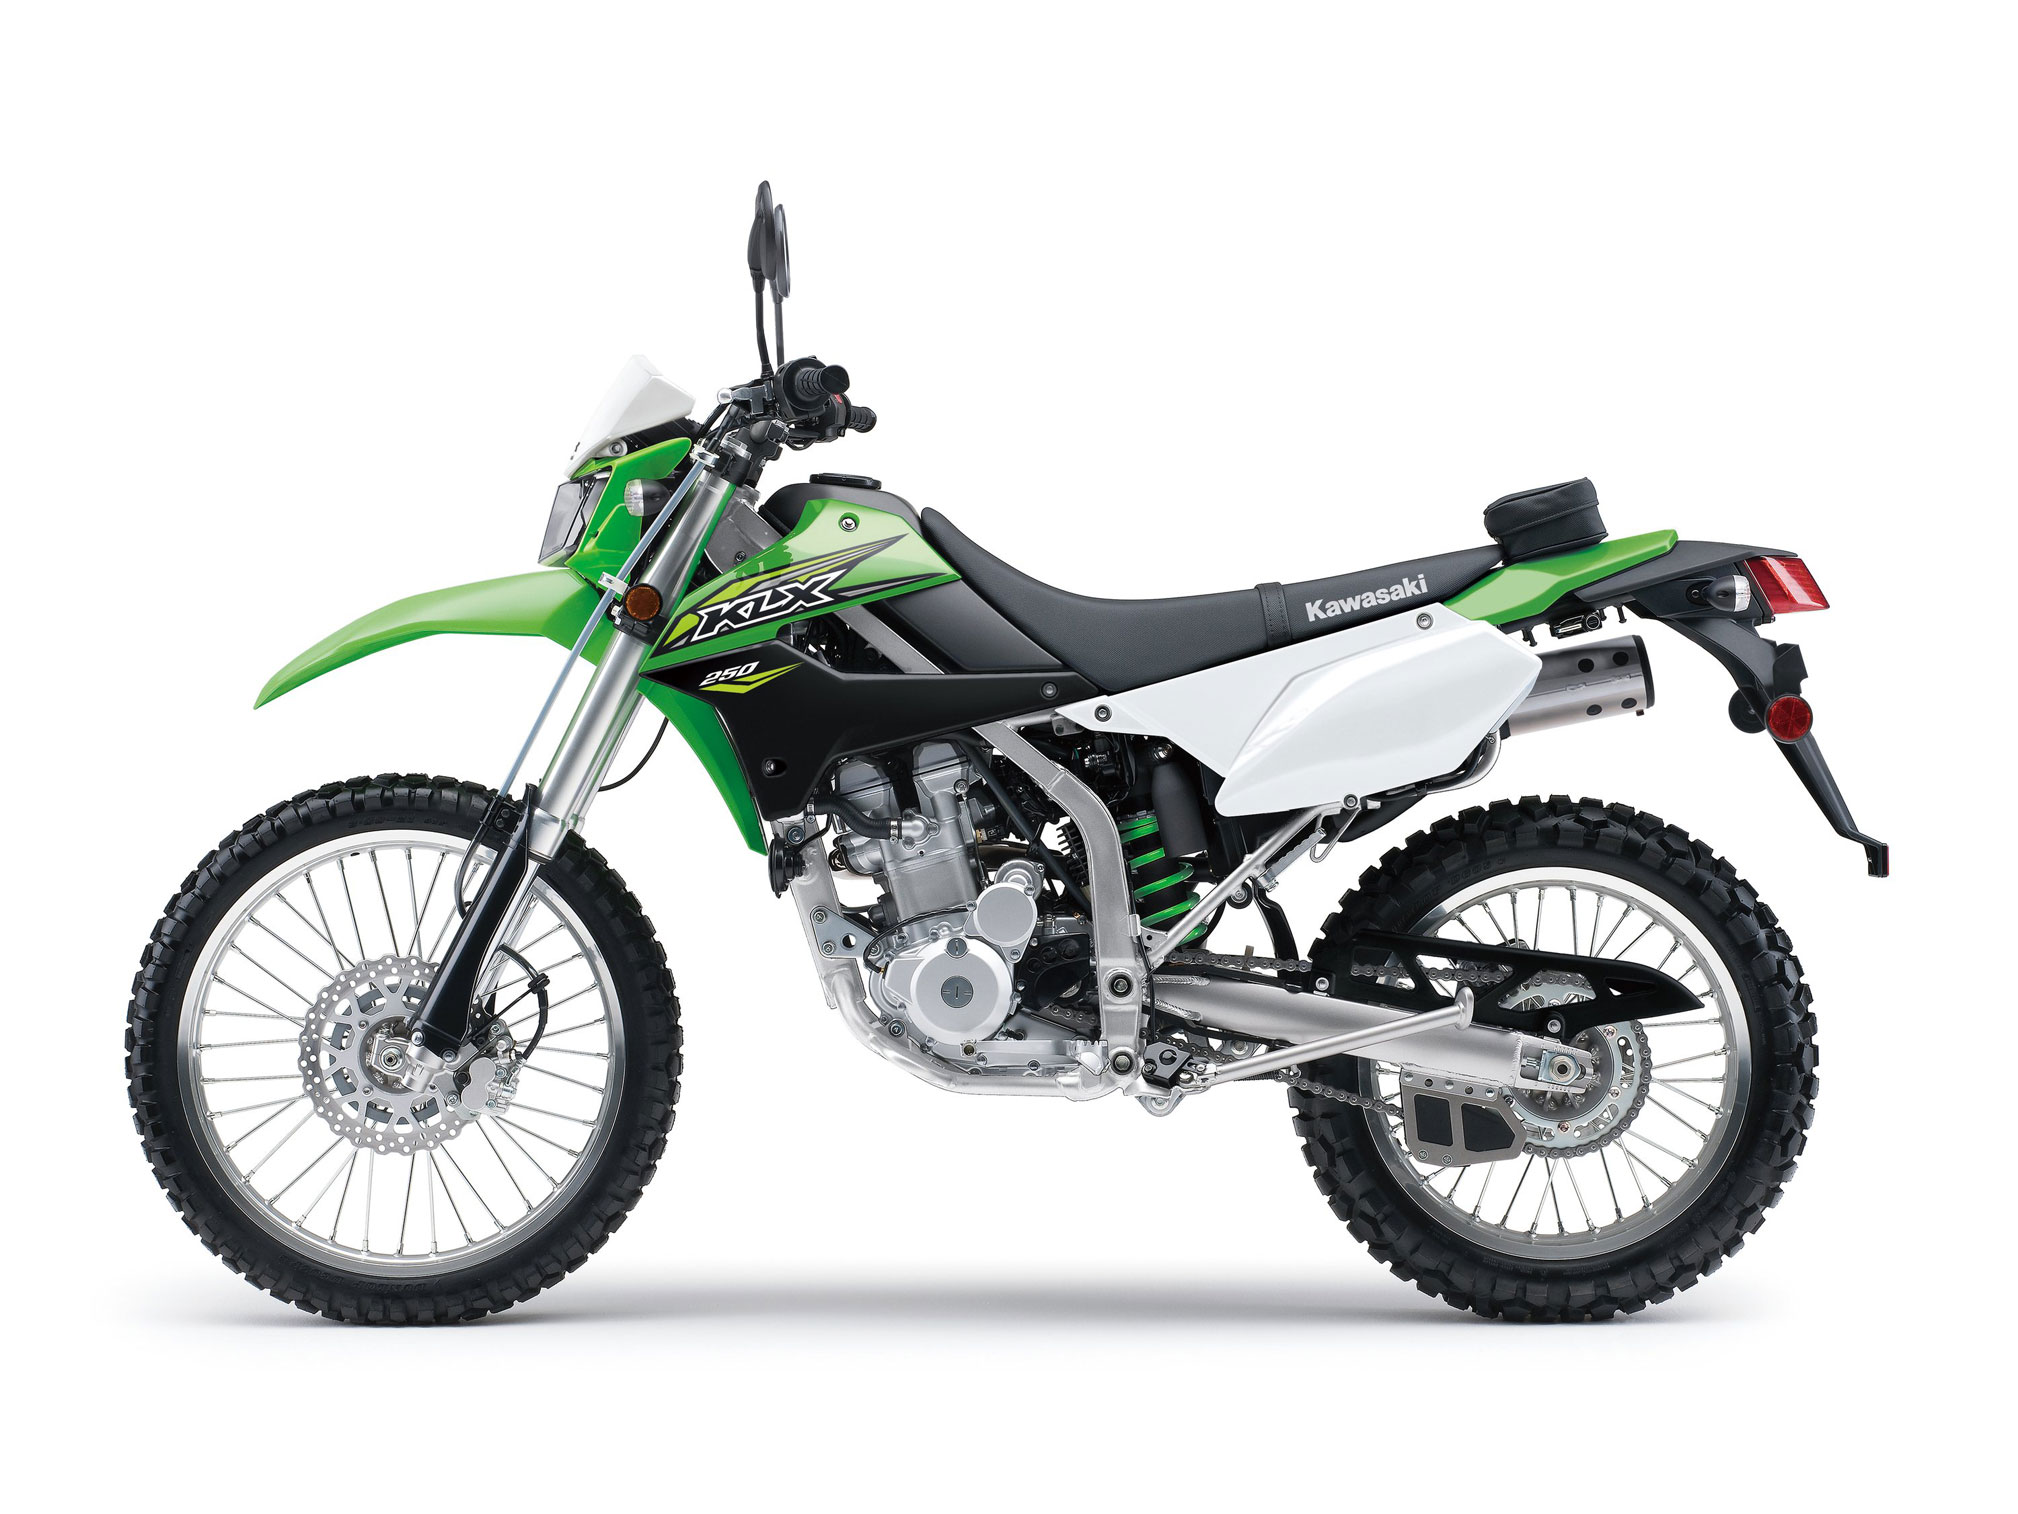 Kawasaki Klx250s Review Total Motorcycle